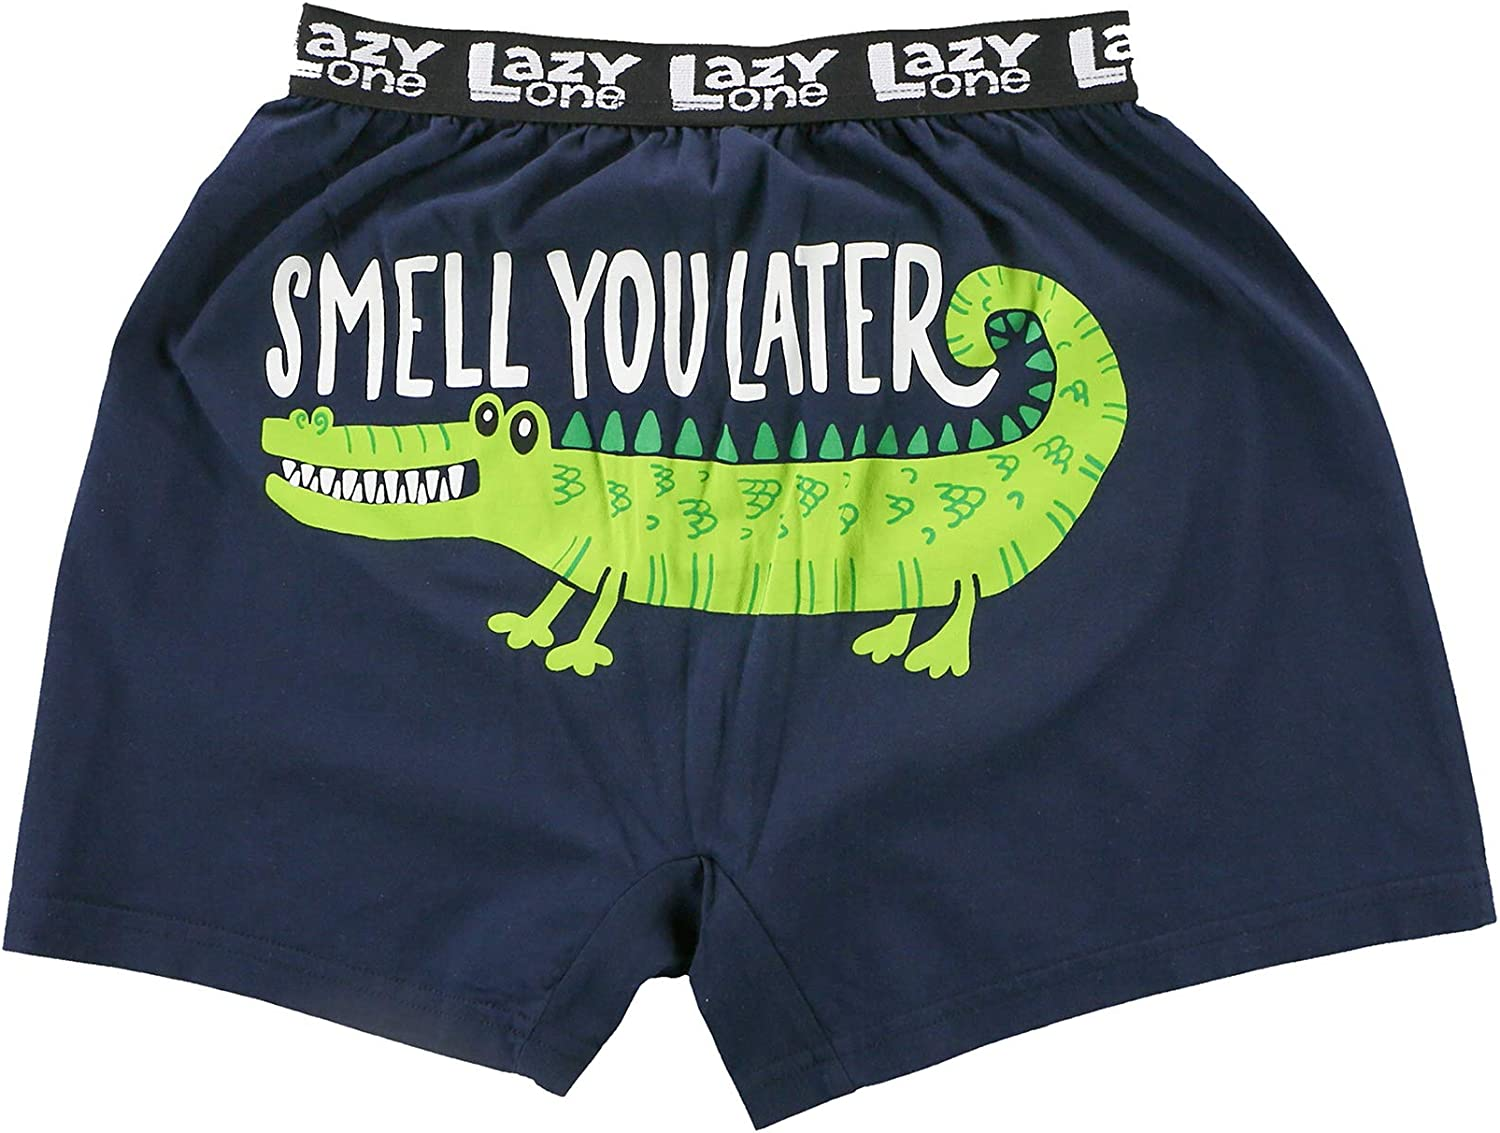 Novelty Boxer Shorts Lazy One Funny Boxers Humorous Underwear Gag Gifts for Men